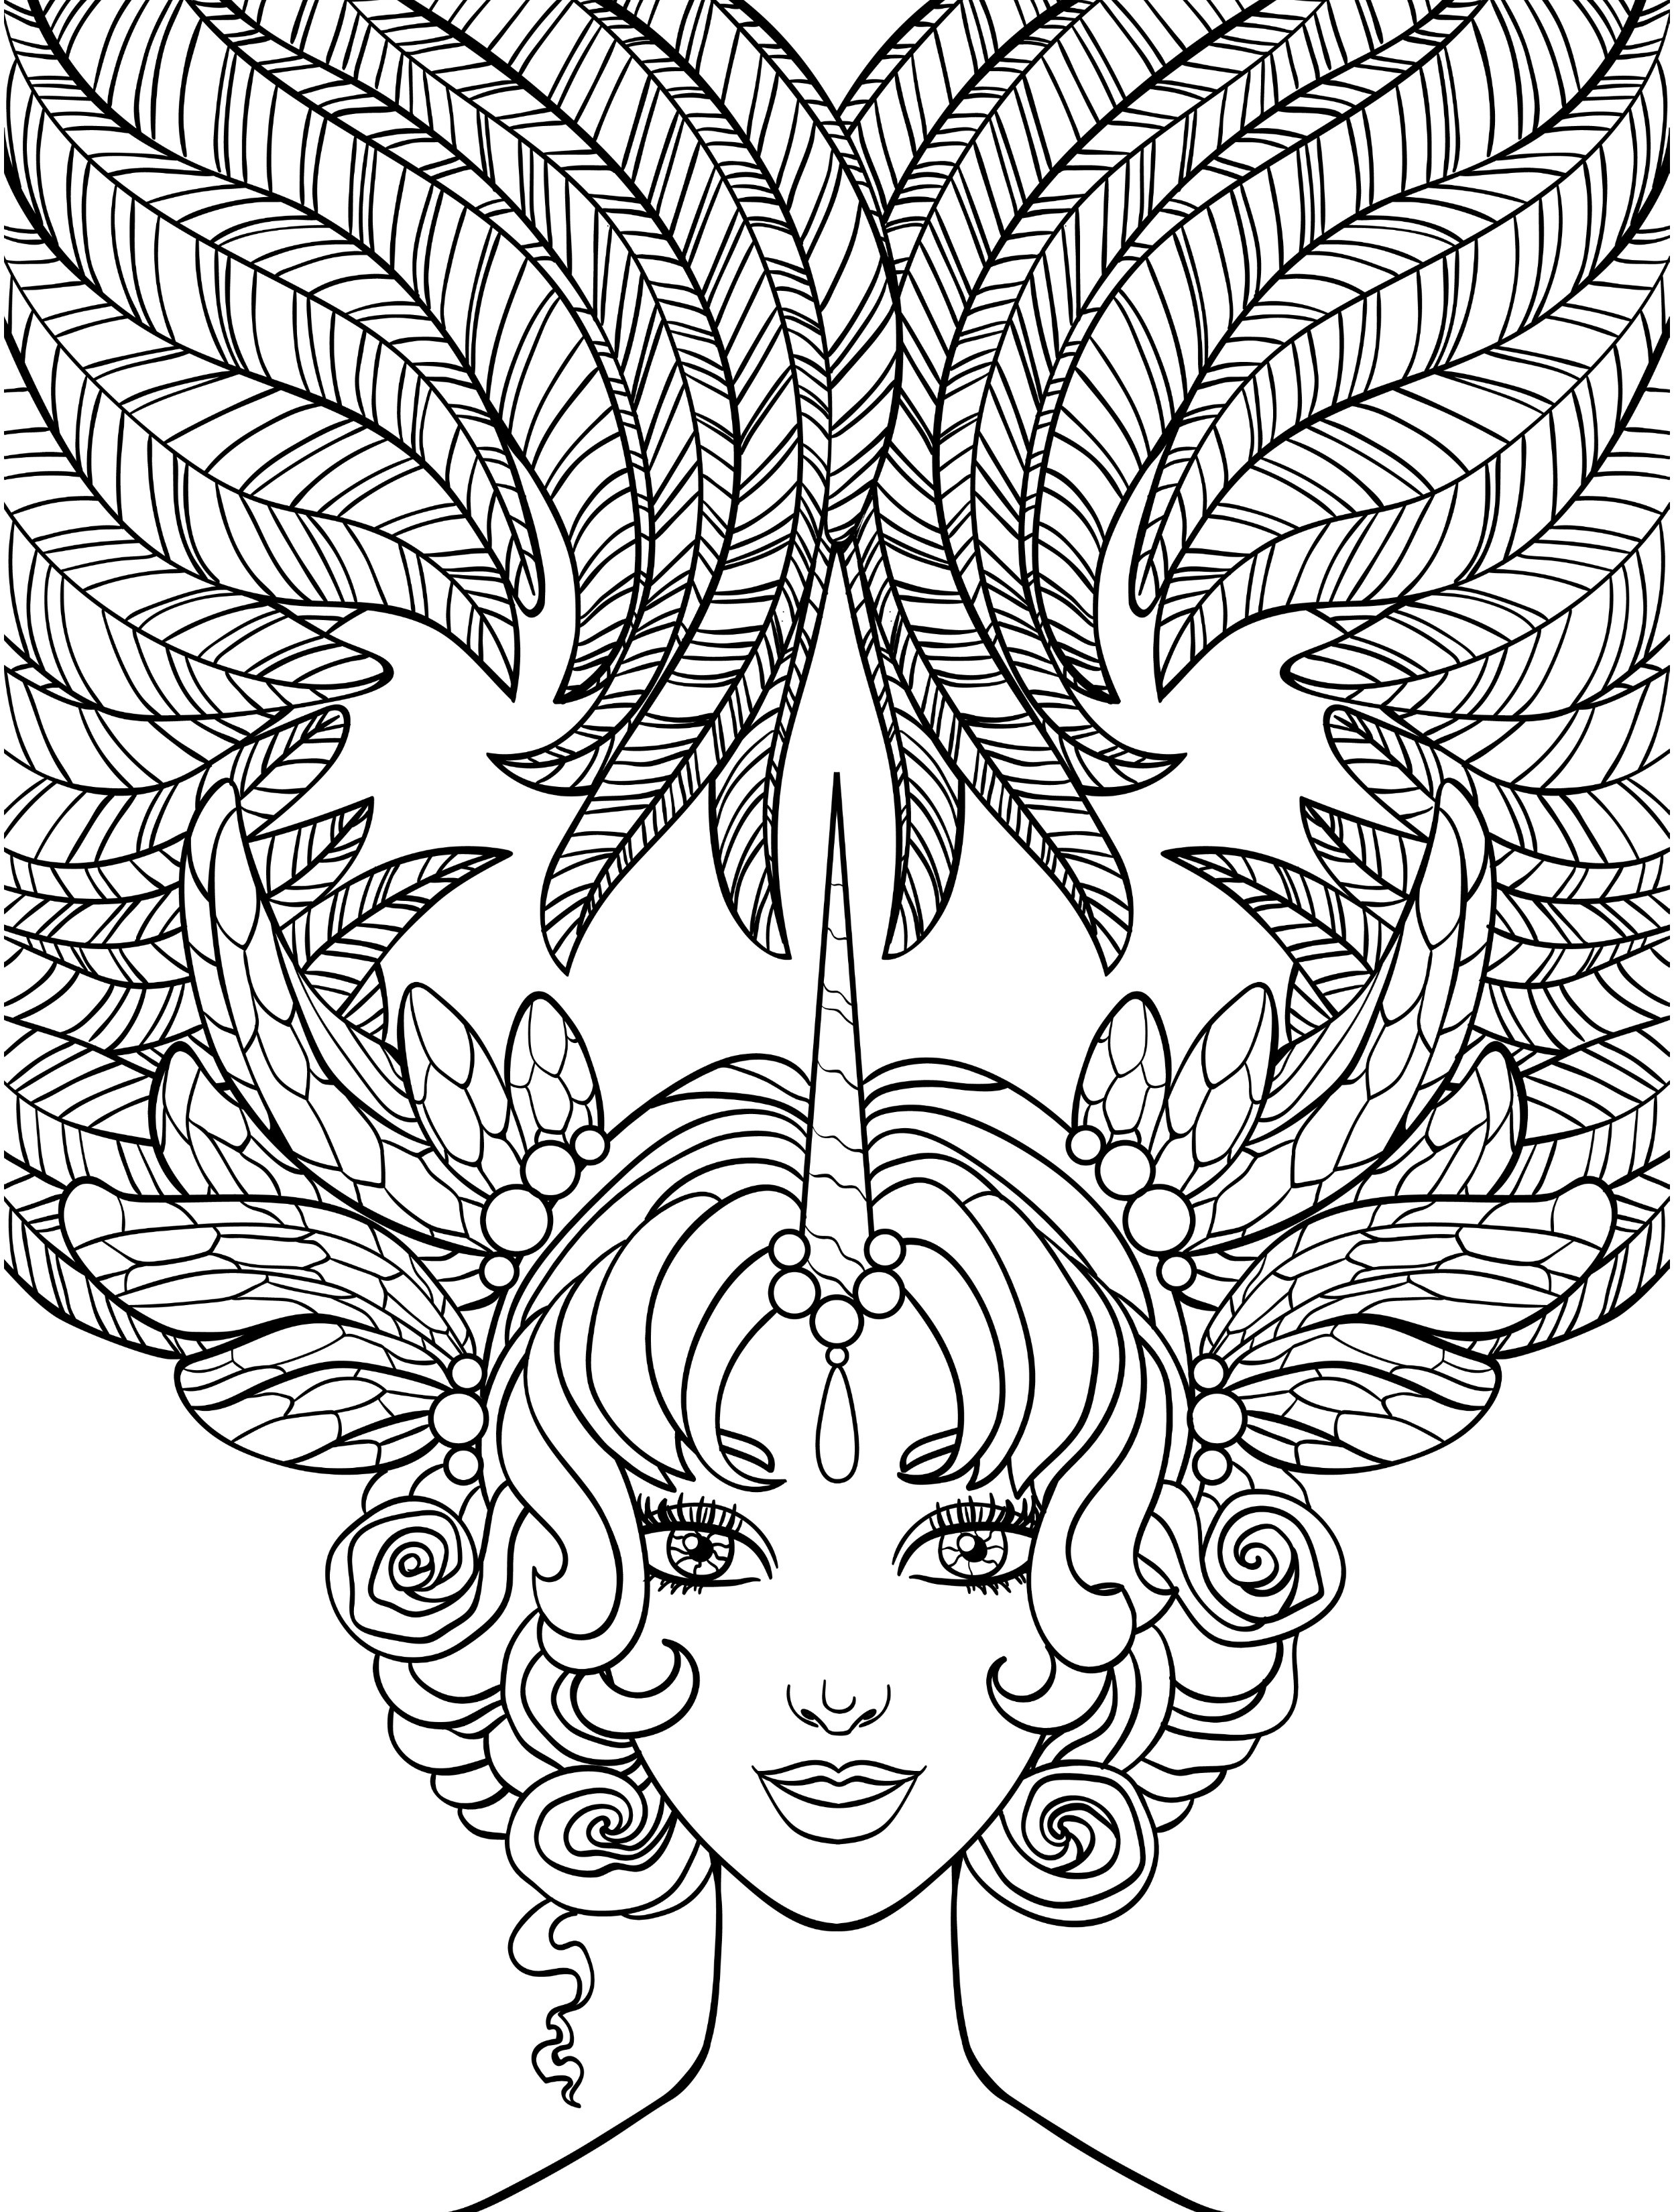 2500x3300 Value Conflict Resolution Coloring Pages 10 Crazy Hair Adult